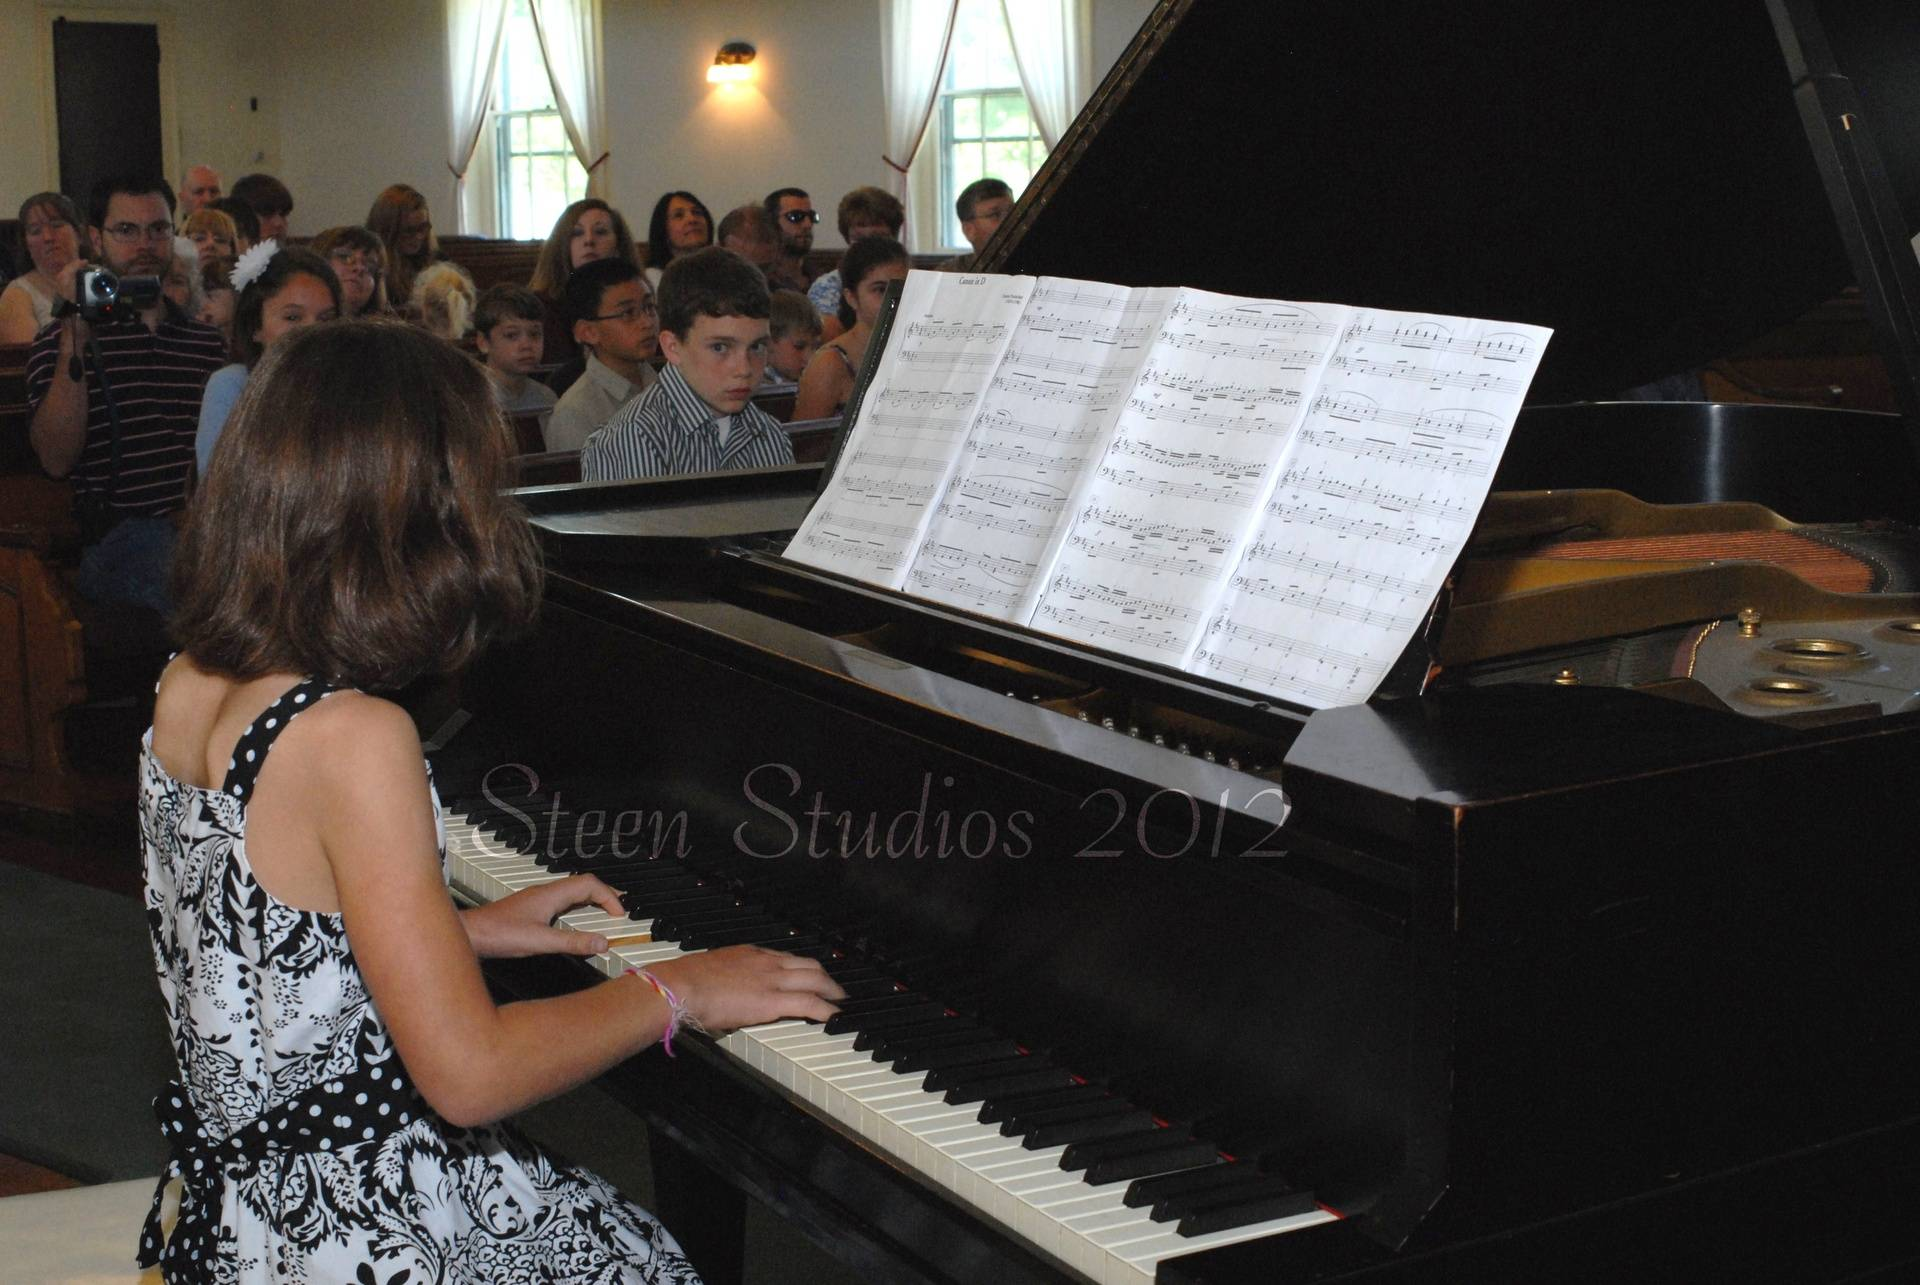 Brianna plays Pachelbel's Canon in D